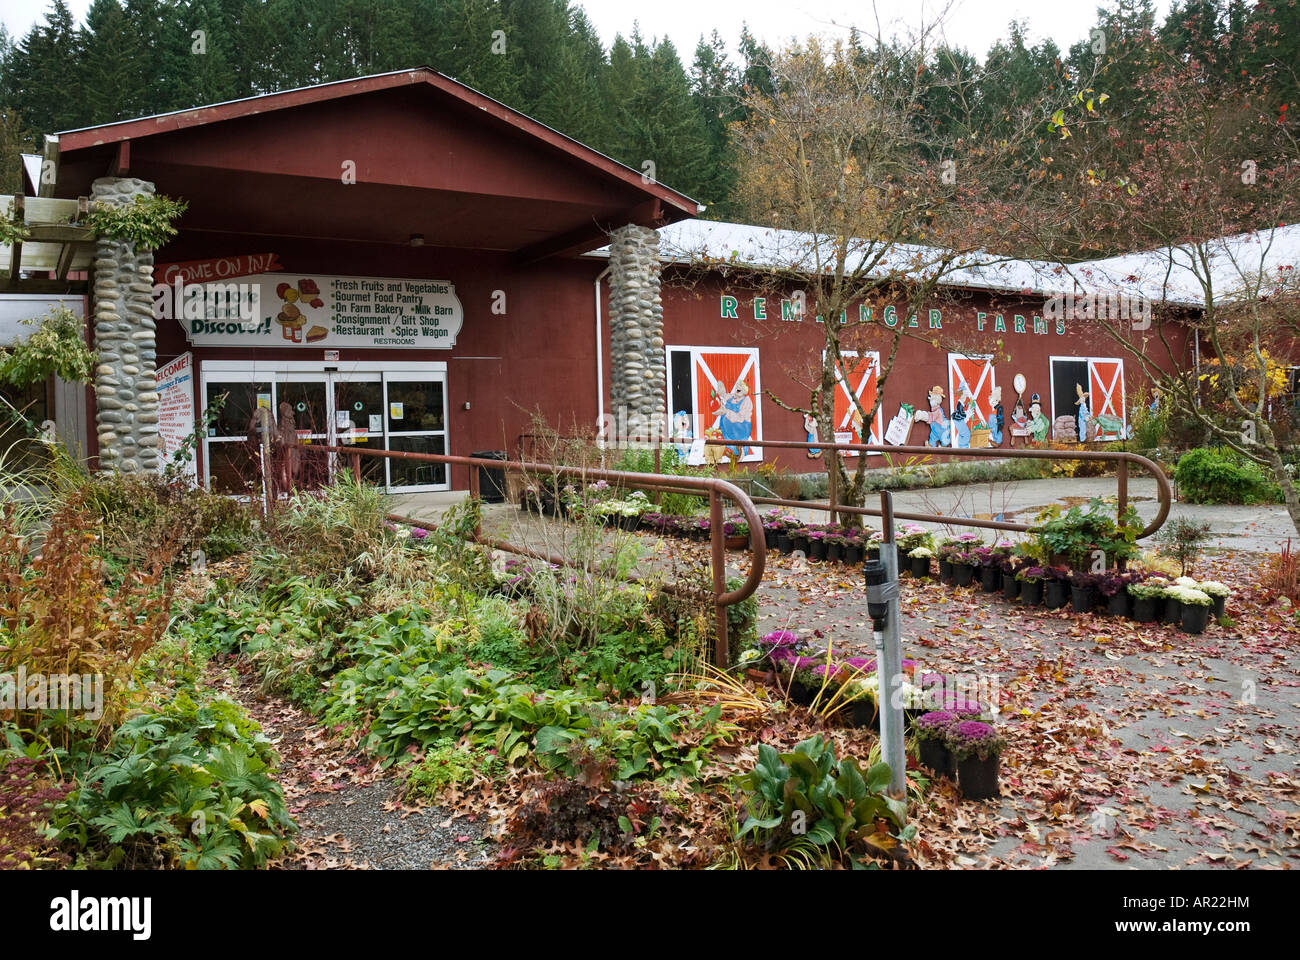 Remlinger Farms Store Carnation Washington Stock Photo Alamy